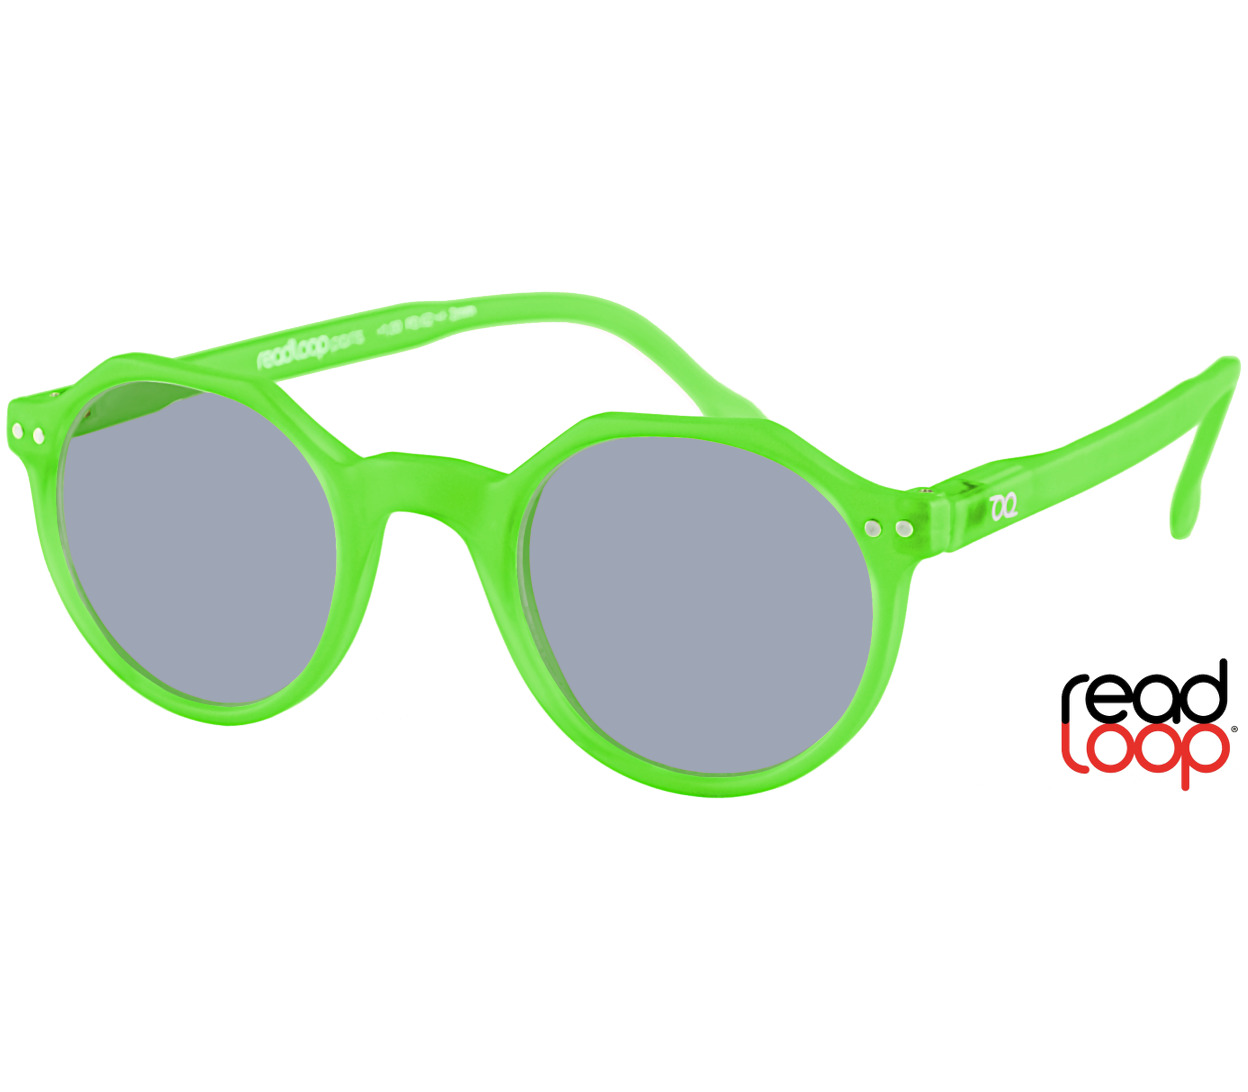 Main Image (Angle) - Oasis (Green) Retro Sun Readers